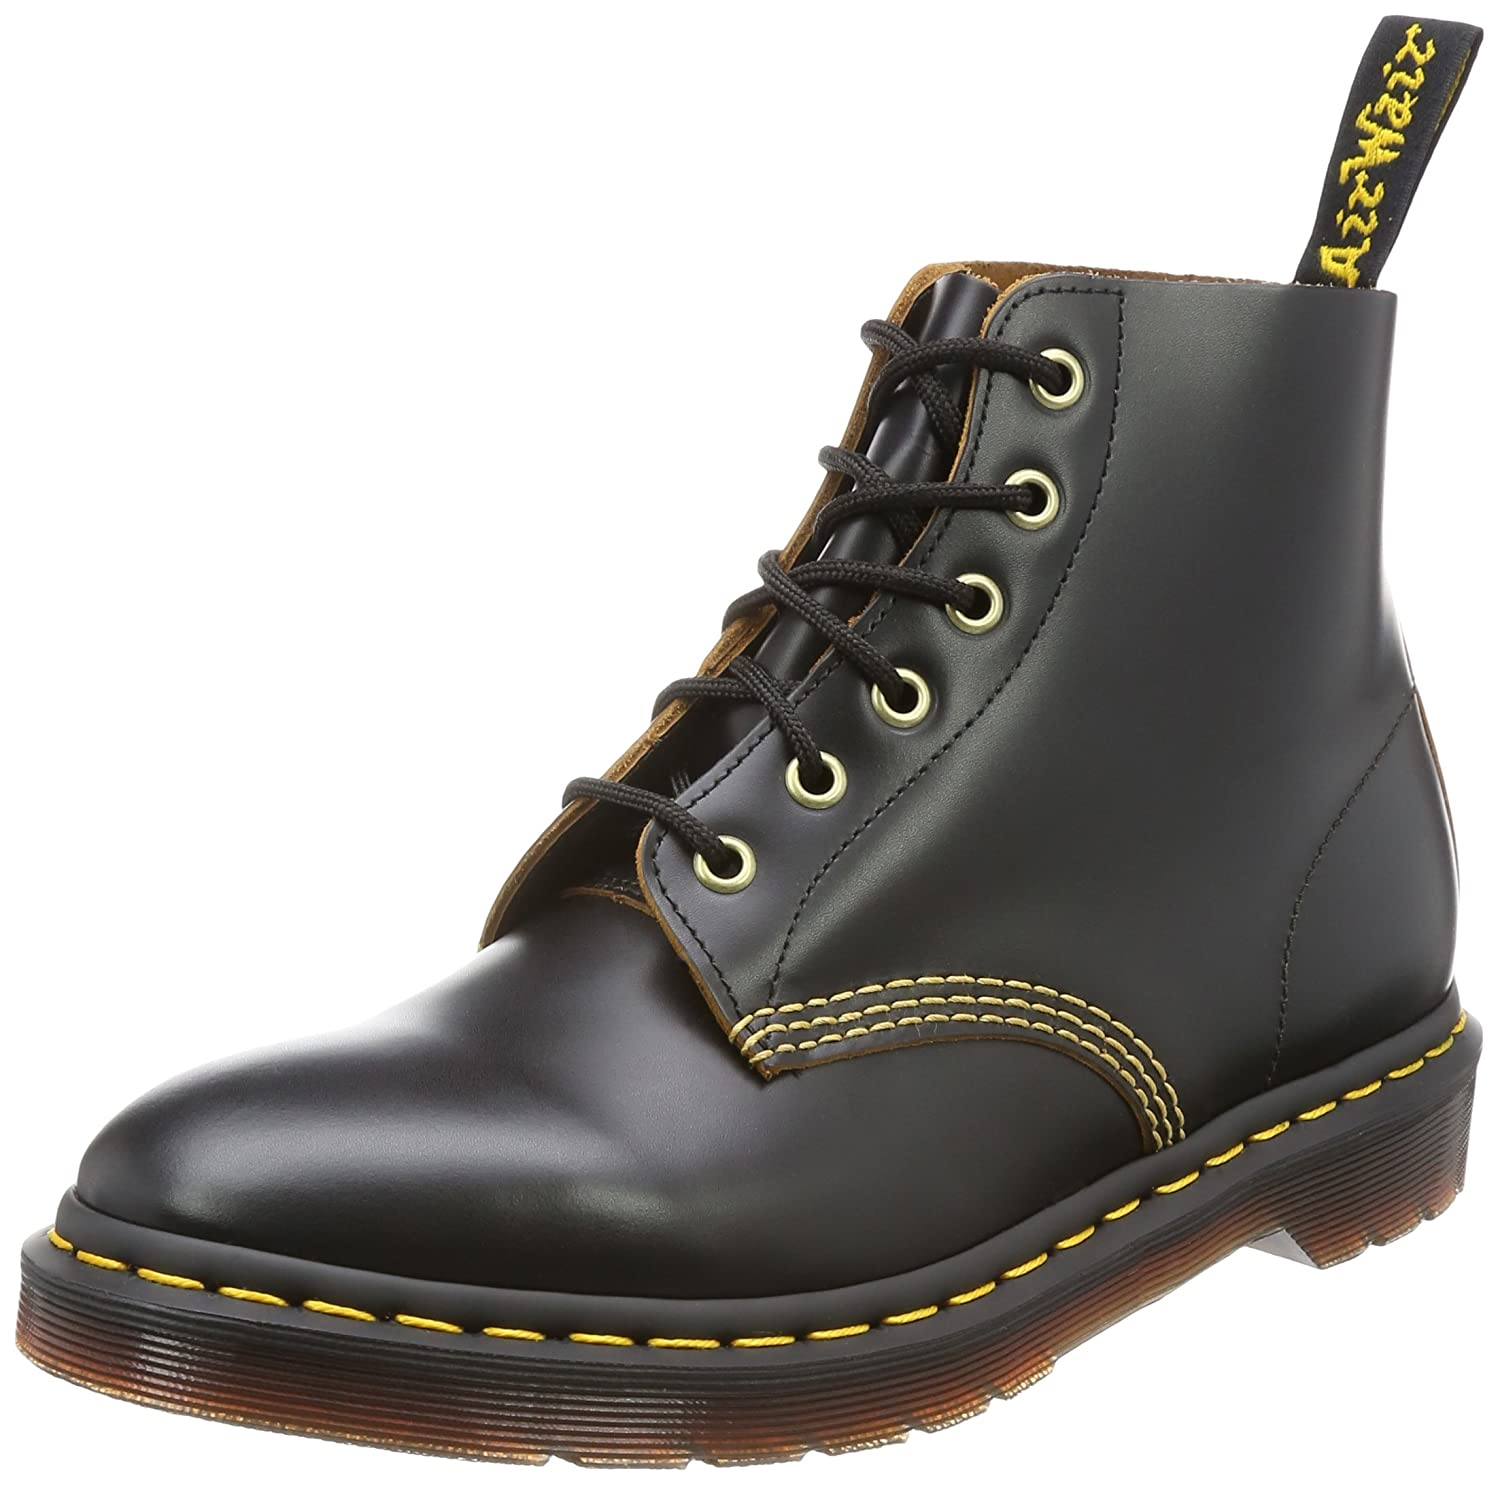 59bd854ad29 Dr.Martens Mens 101 Arc 6 Eyelet Leather Boots